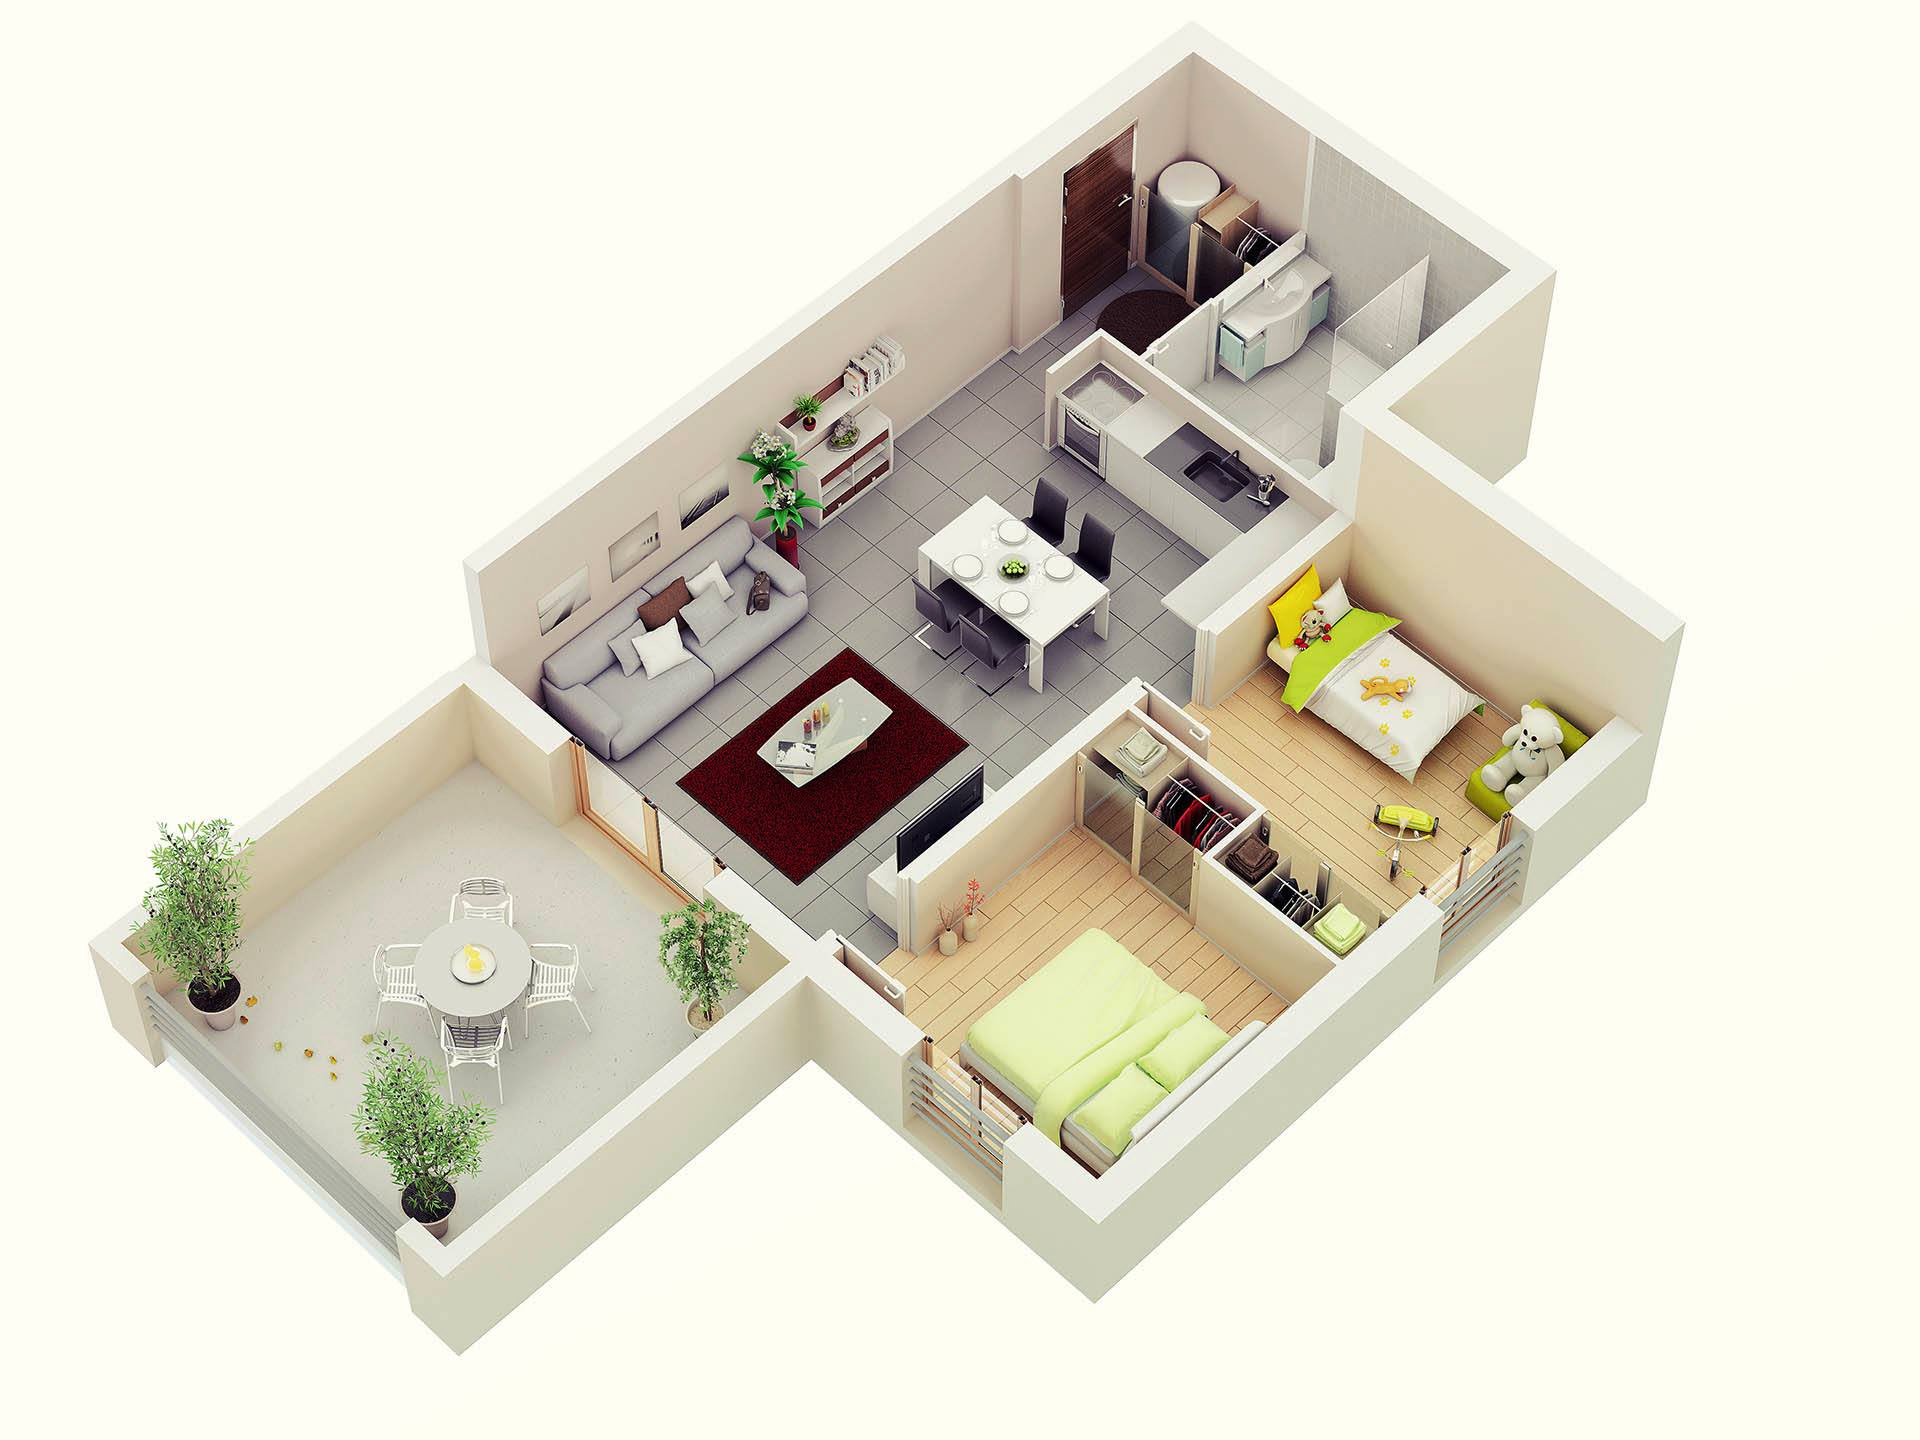 House layout and design